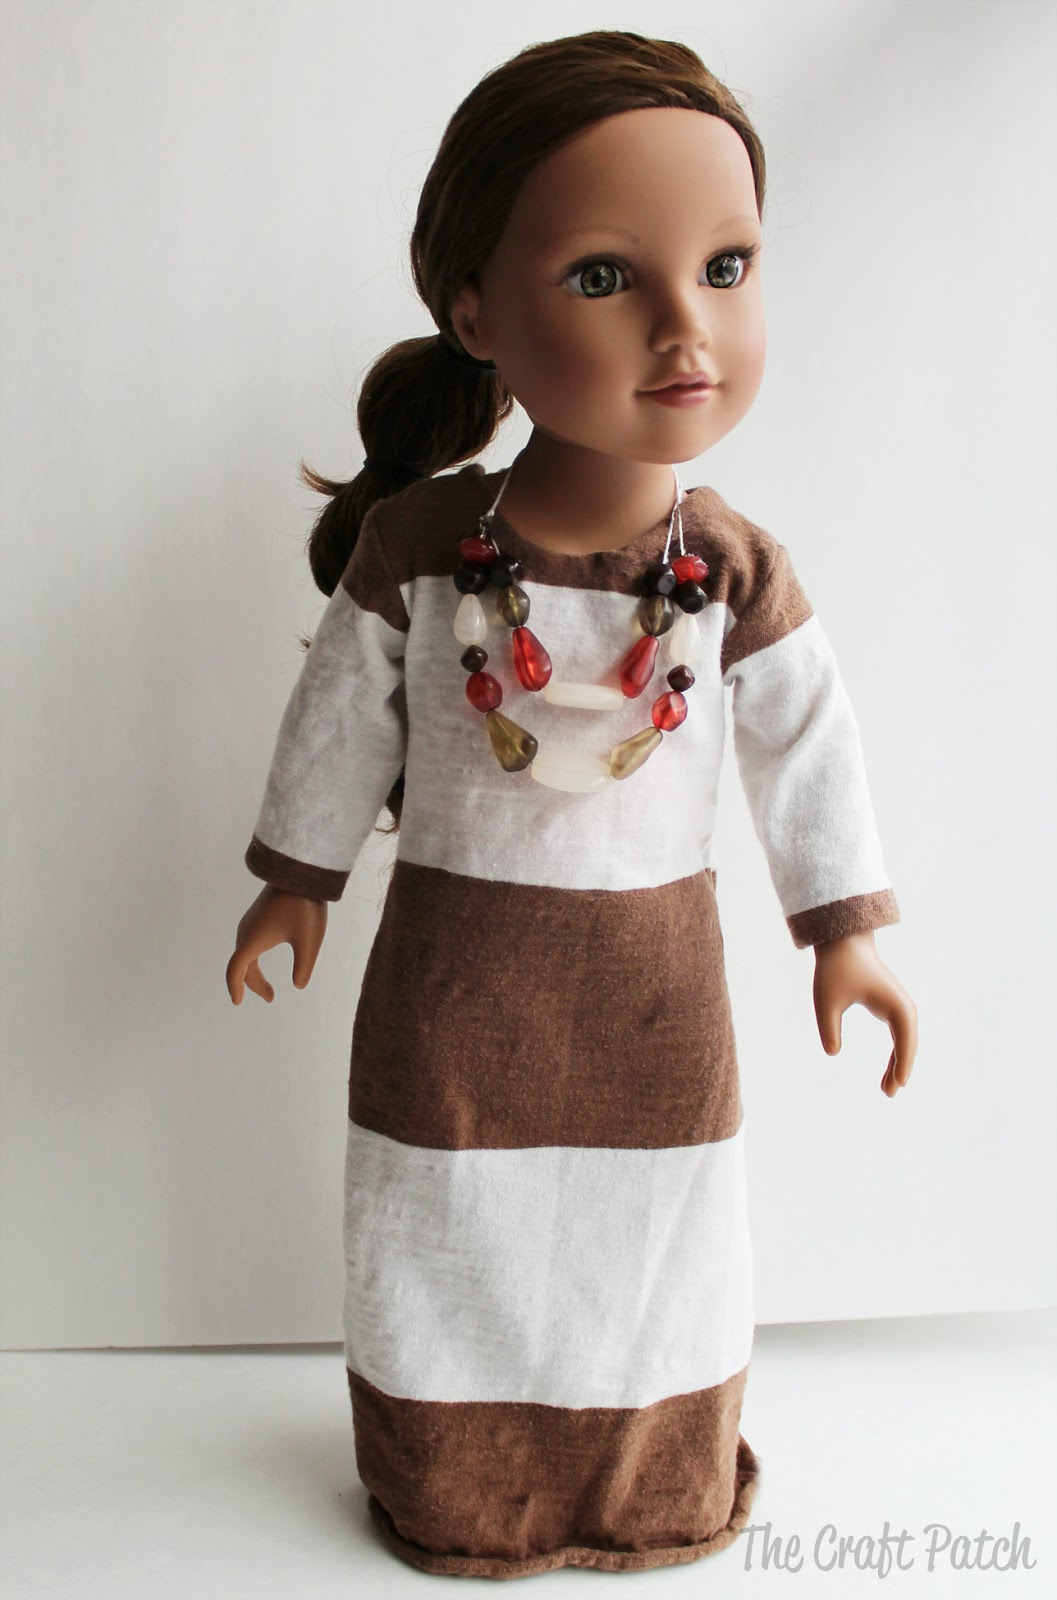 The Craft Patch American Girl Doll Basic Knit Dress